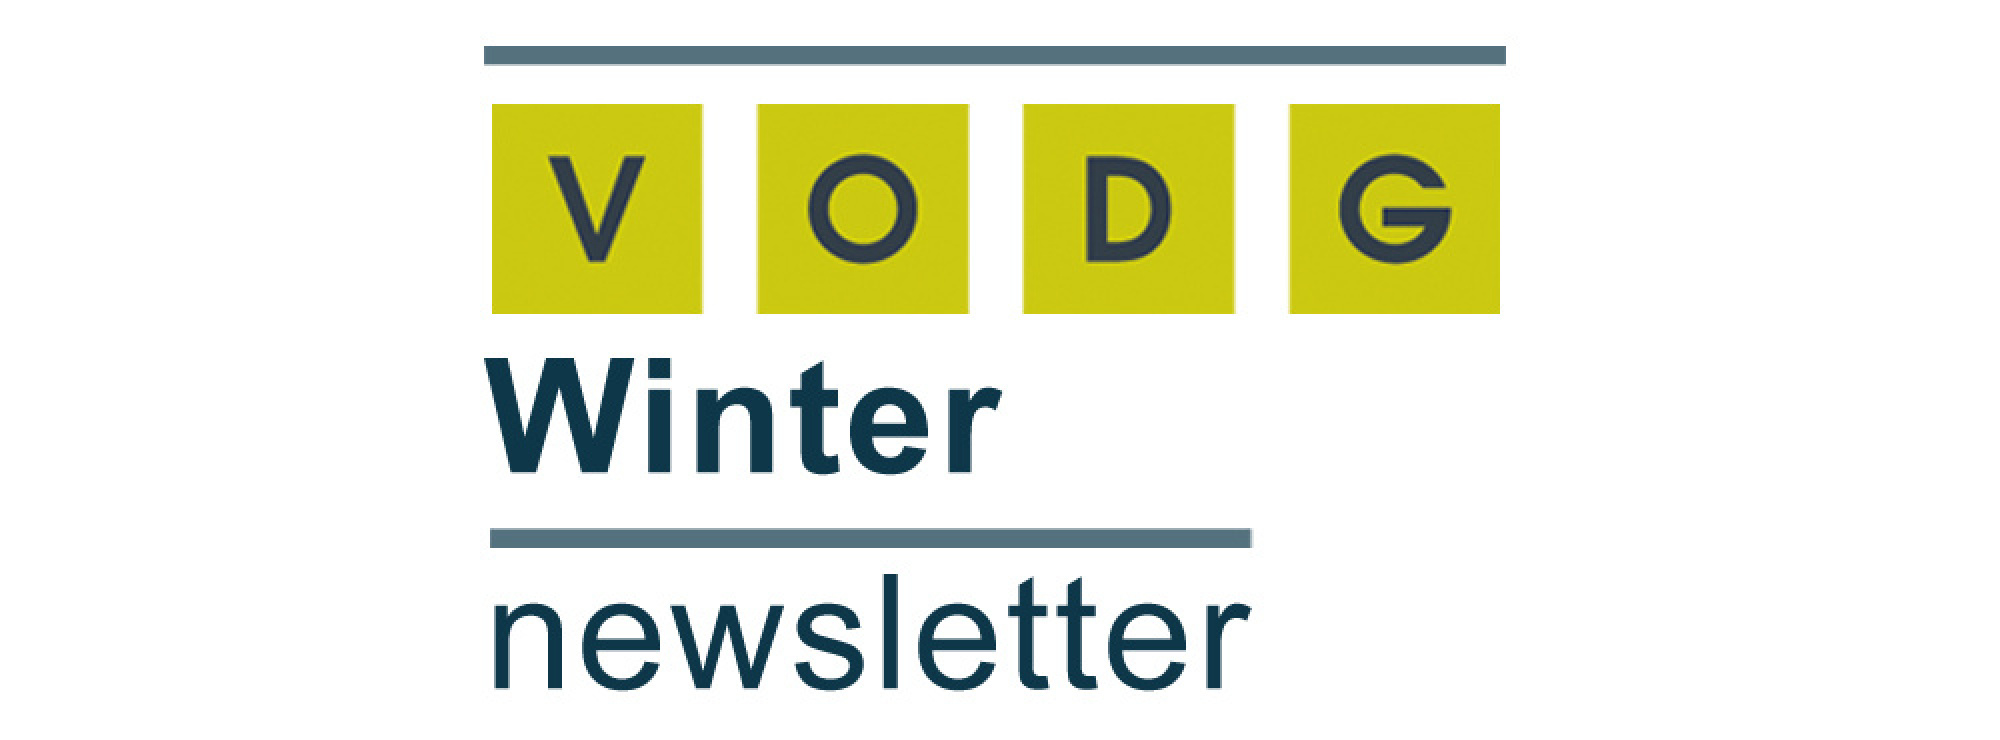 Copy of 2016 Winter newsletter